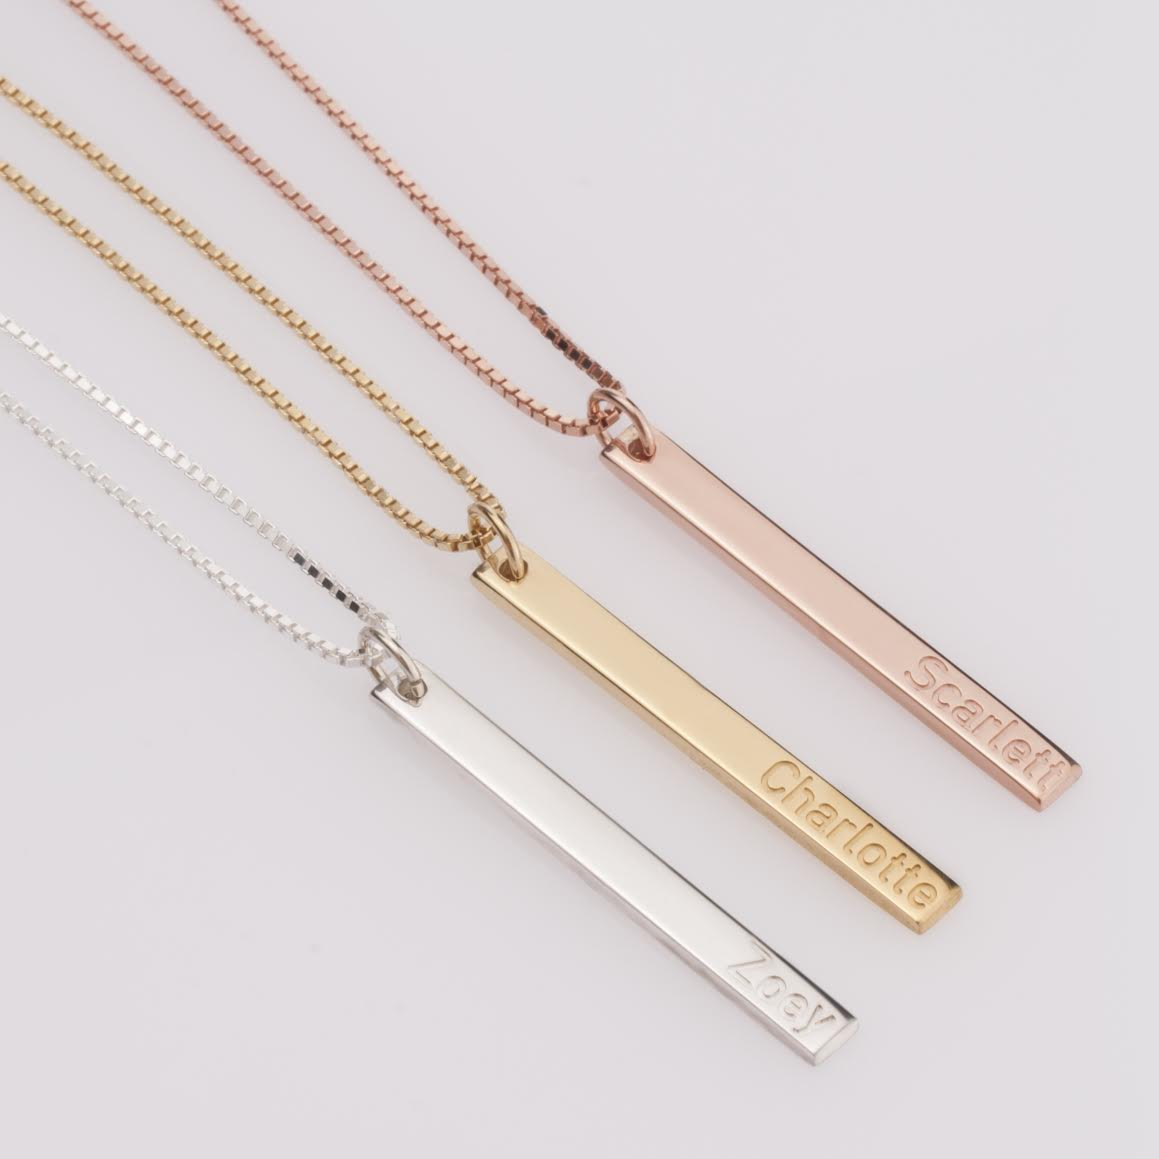 The perfect Bridesmaid Gift : a Dainty Personalized Bar Necklace from oNecklace. It's the most unique pendant featuring an elegant thin bar, with intricately engraved letters and hangs effortlessly from a quality chain. Comes available to personalize in Sterling Silver, 24K Gold Plated, Rose Gold and 14K Gold. See more on www.BrendasWeddingBlog.com